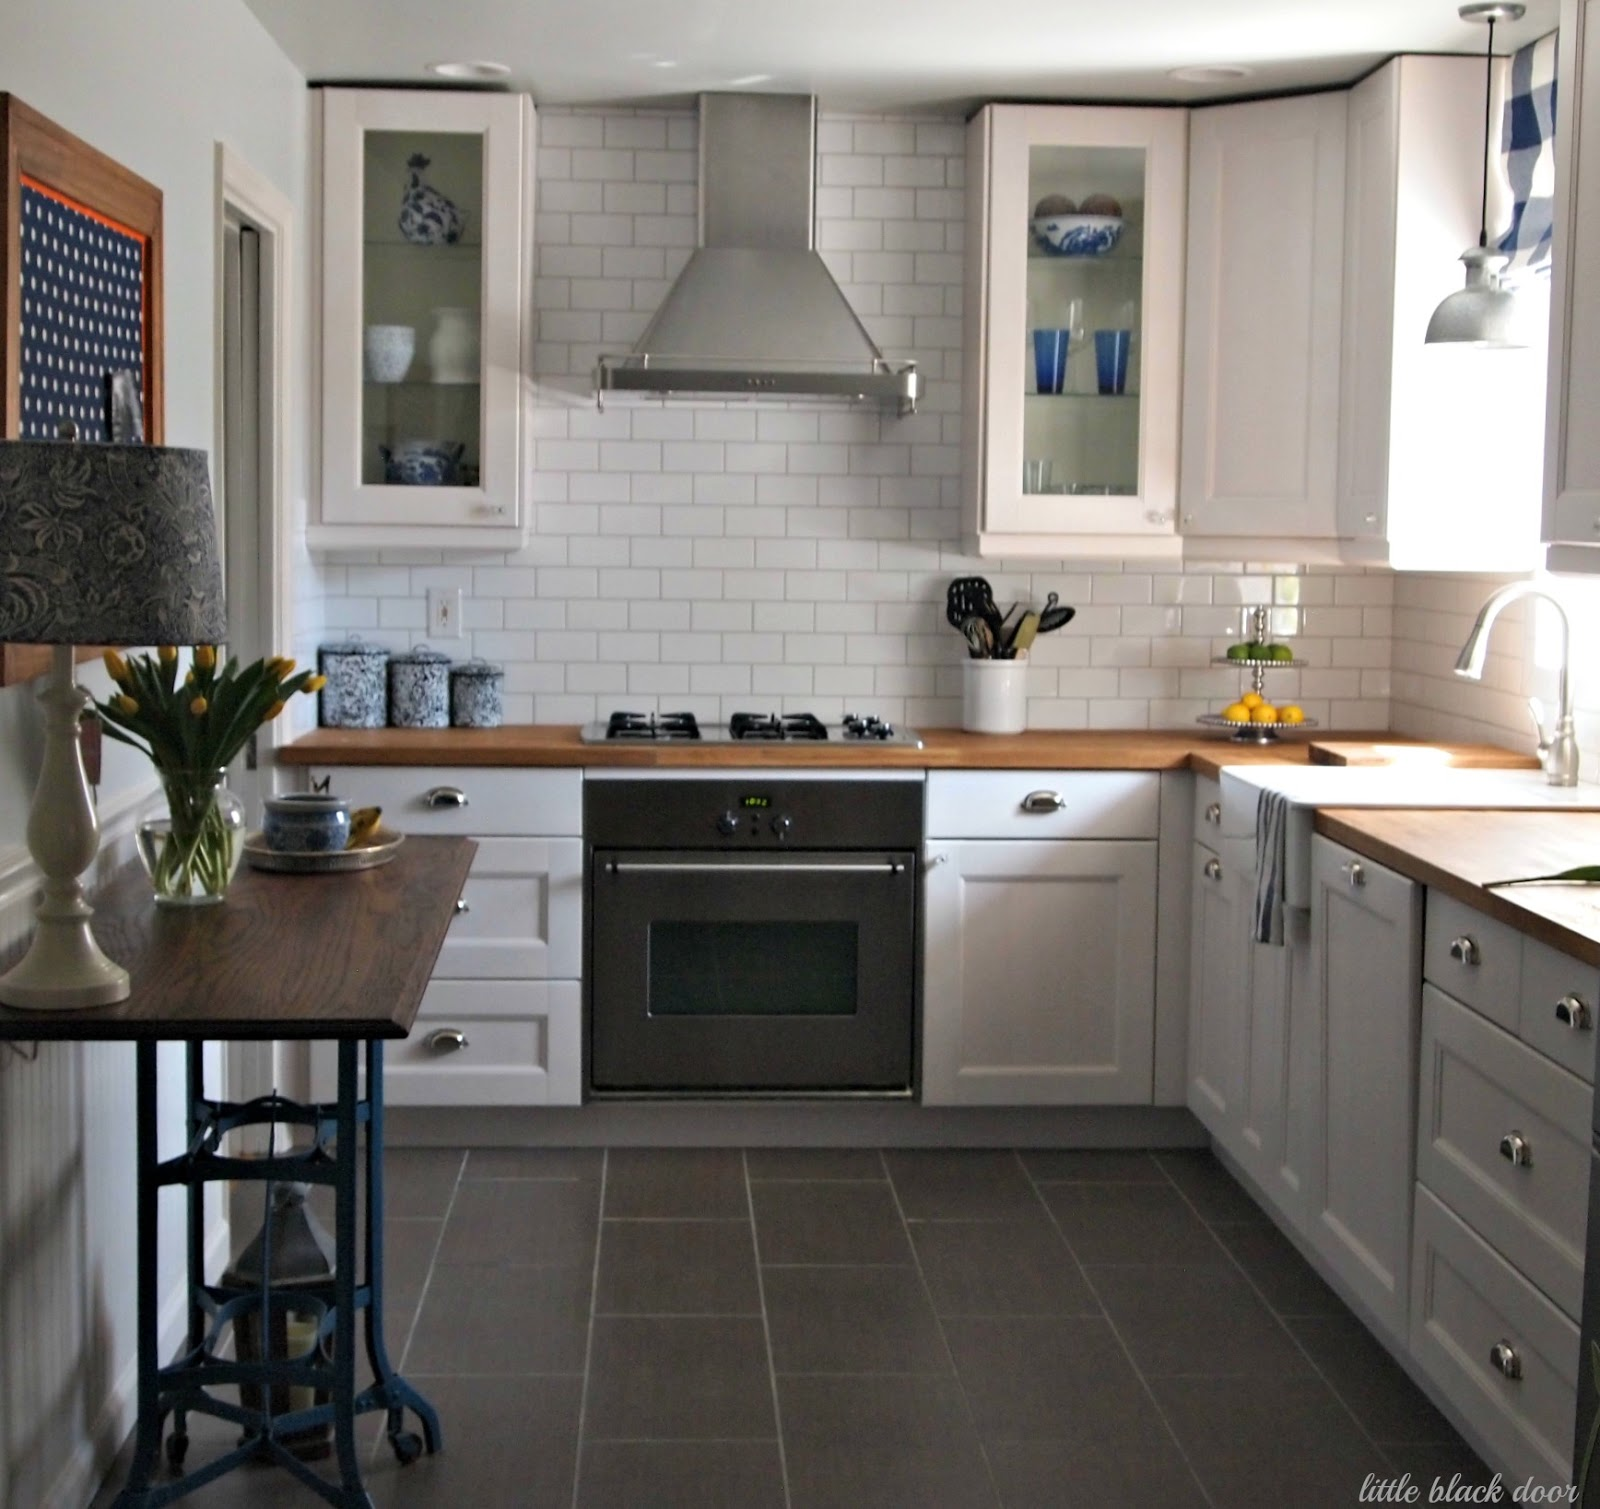 Little black door before and after farmhouse kitchen Kitchen layouts